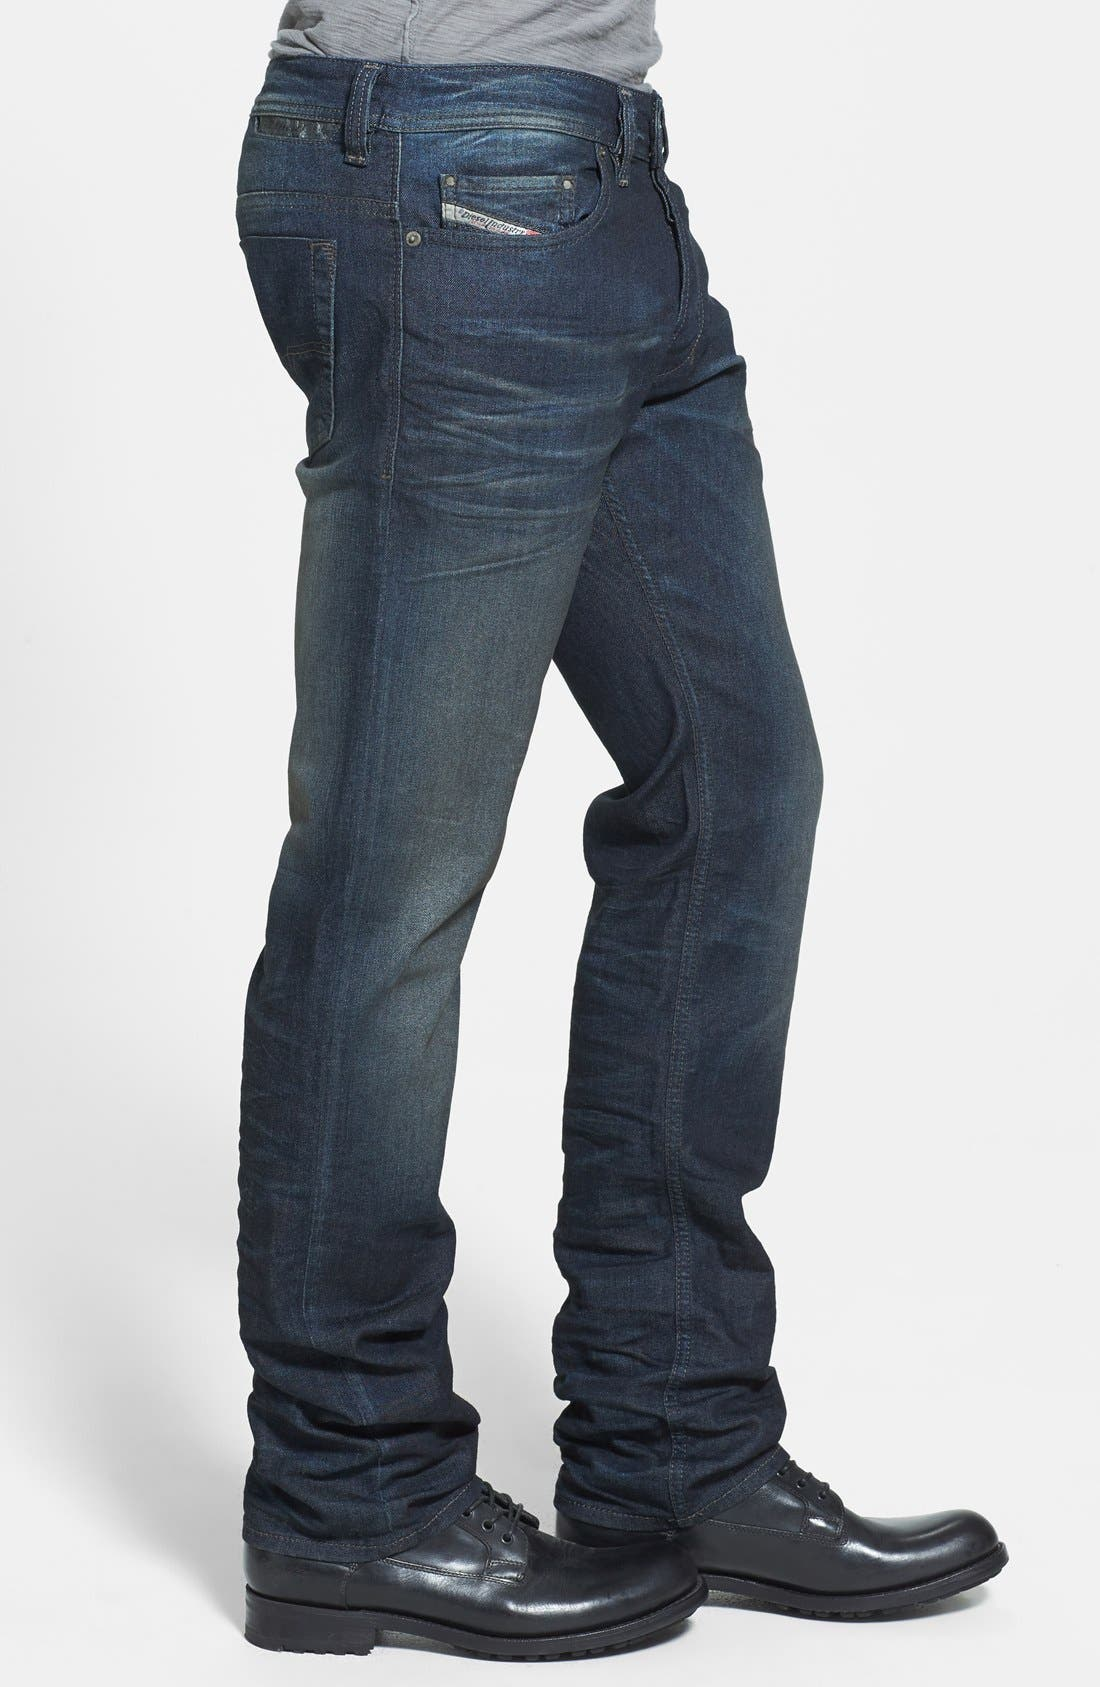 'Safado' Slim Fit Jeans,                             Alternate thumbnail 4, color,                             827K